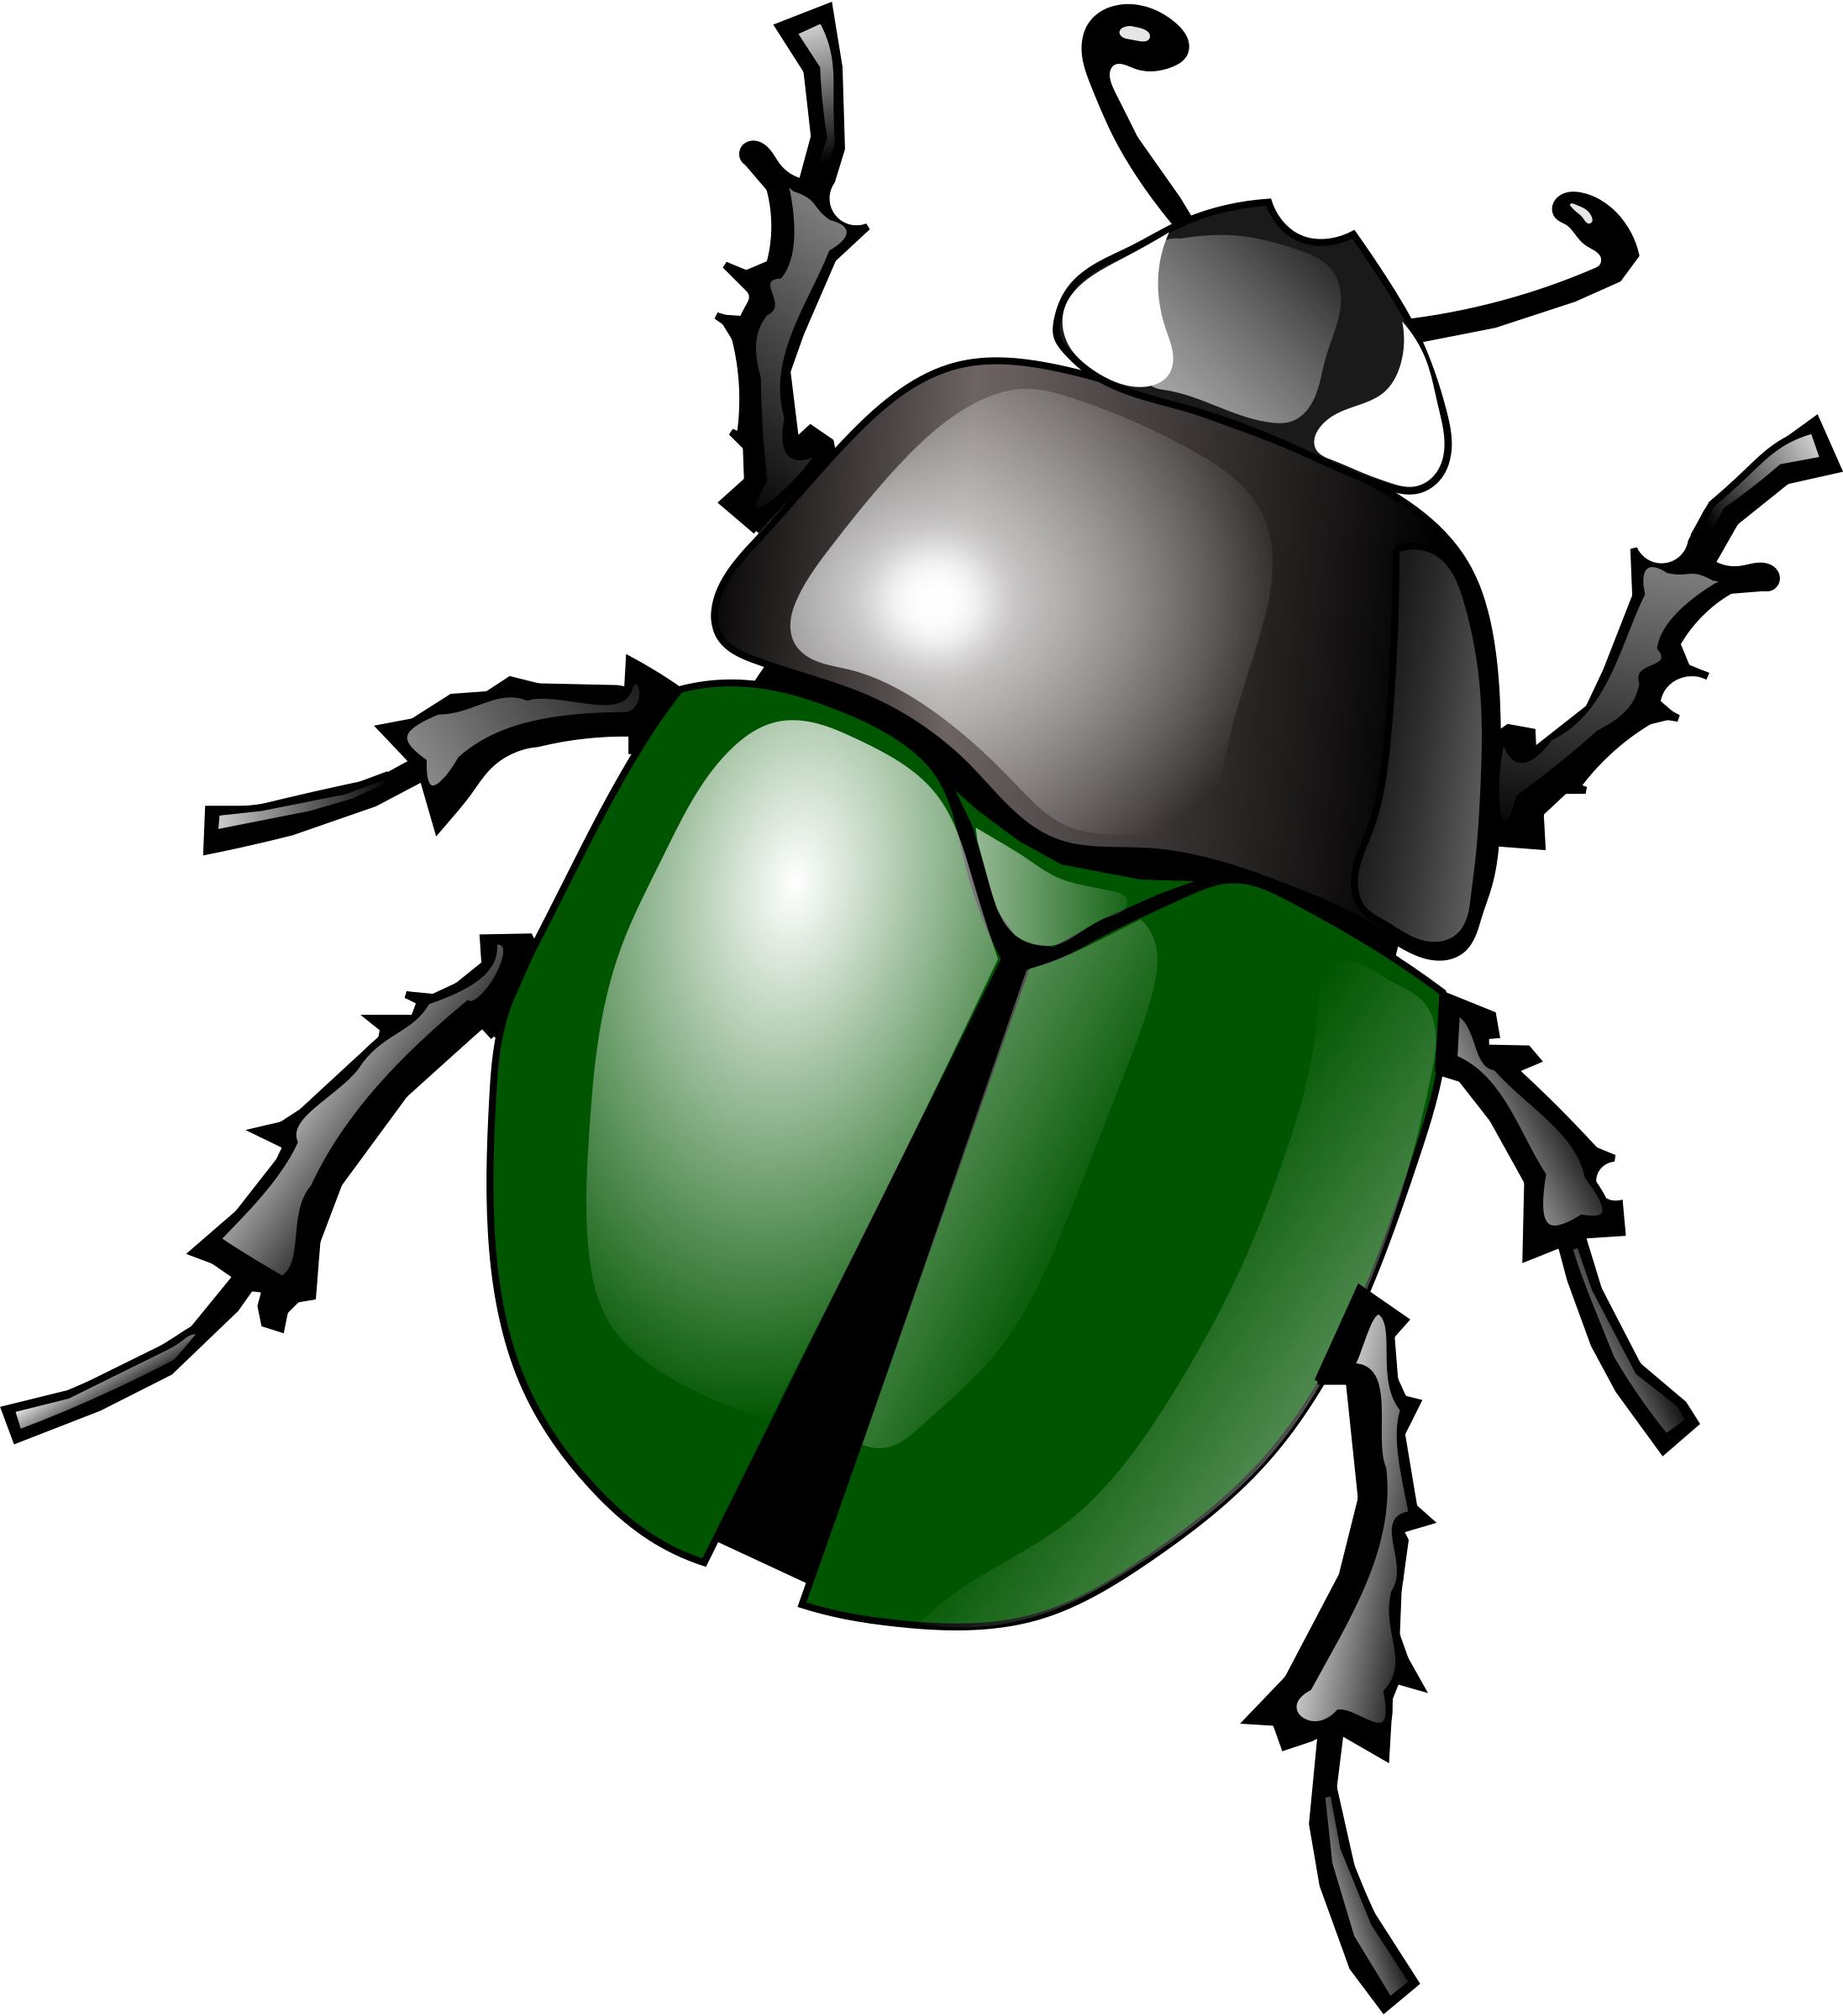 Images For Clip Art Bugs-Images For Clip Art Bugs-16